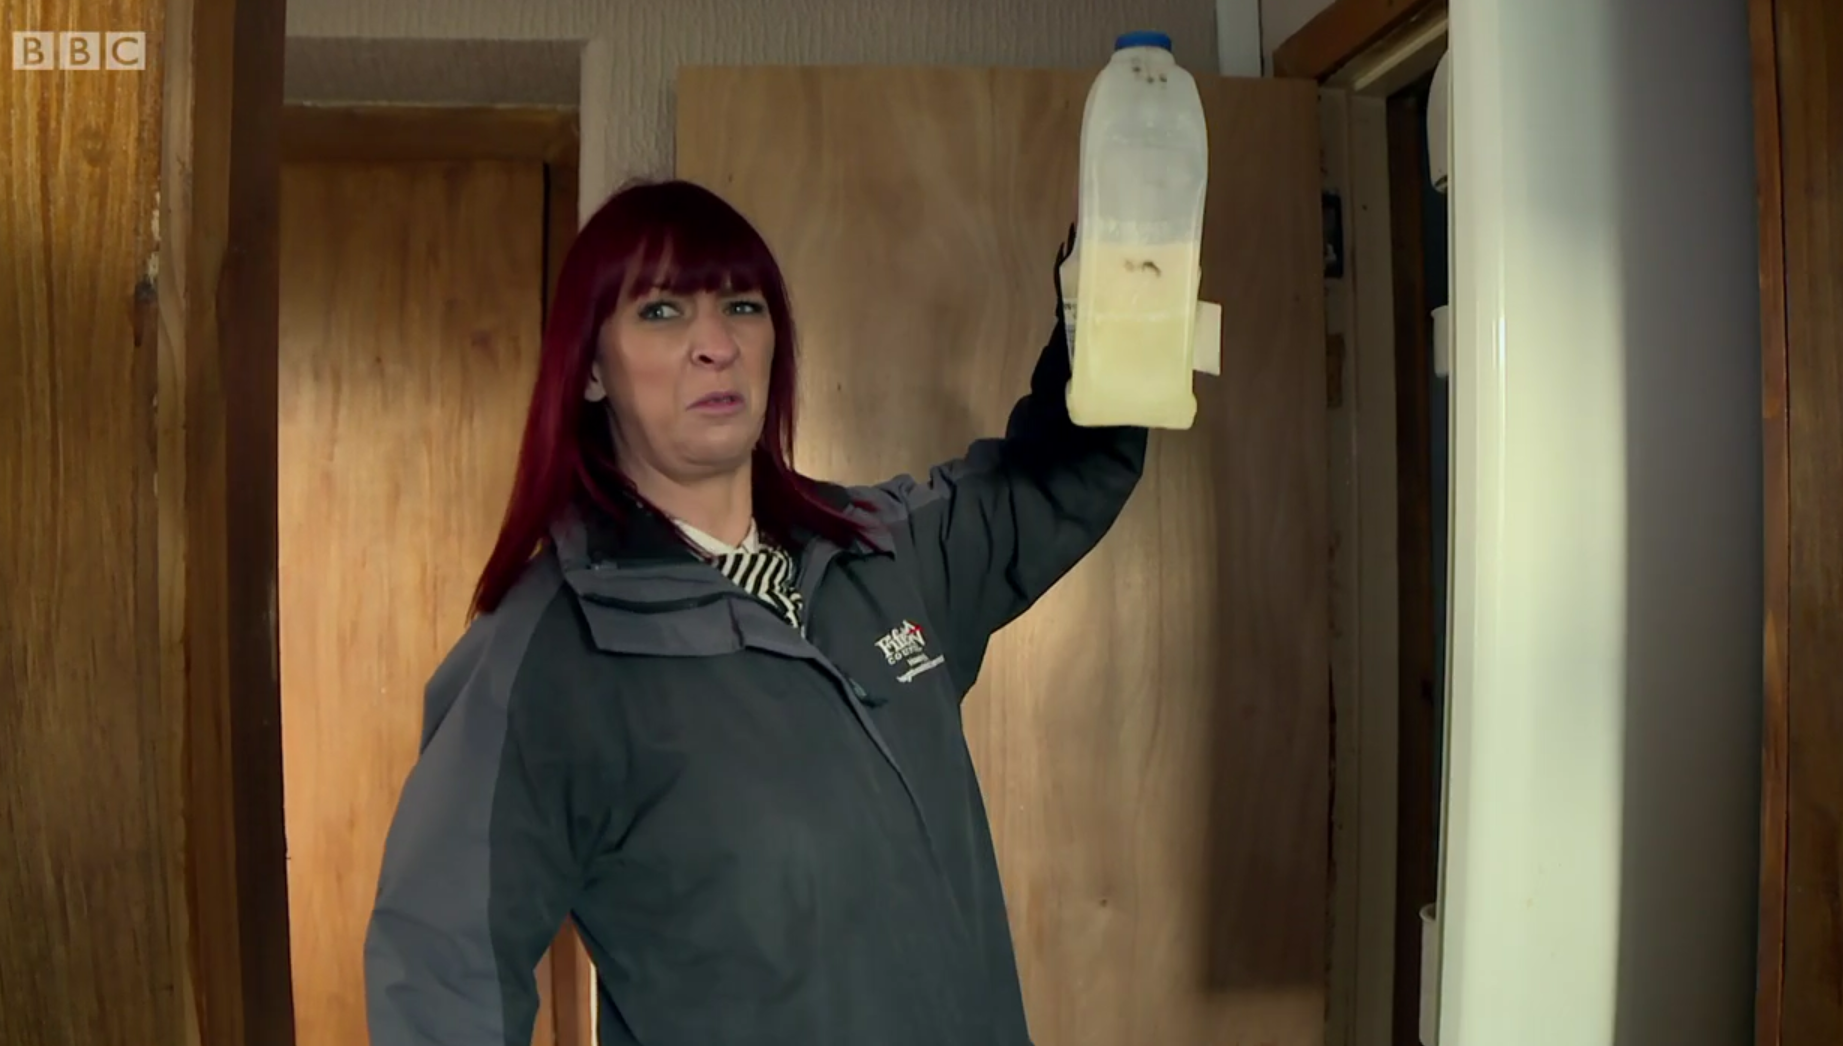 Housing officer Karen investigates an abandoned house in Collydean in a scene from The Council.